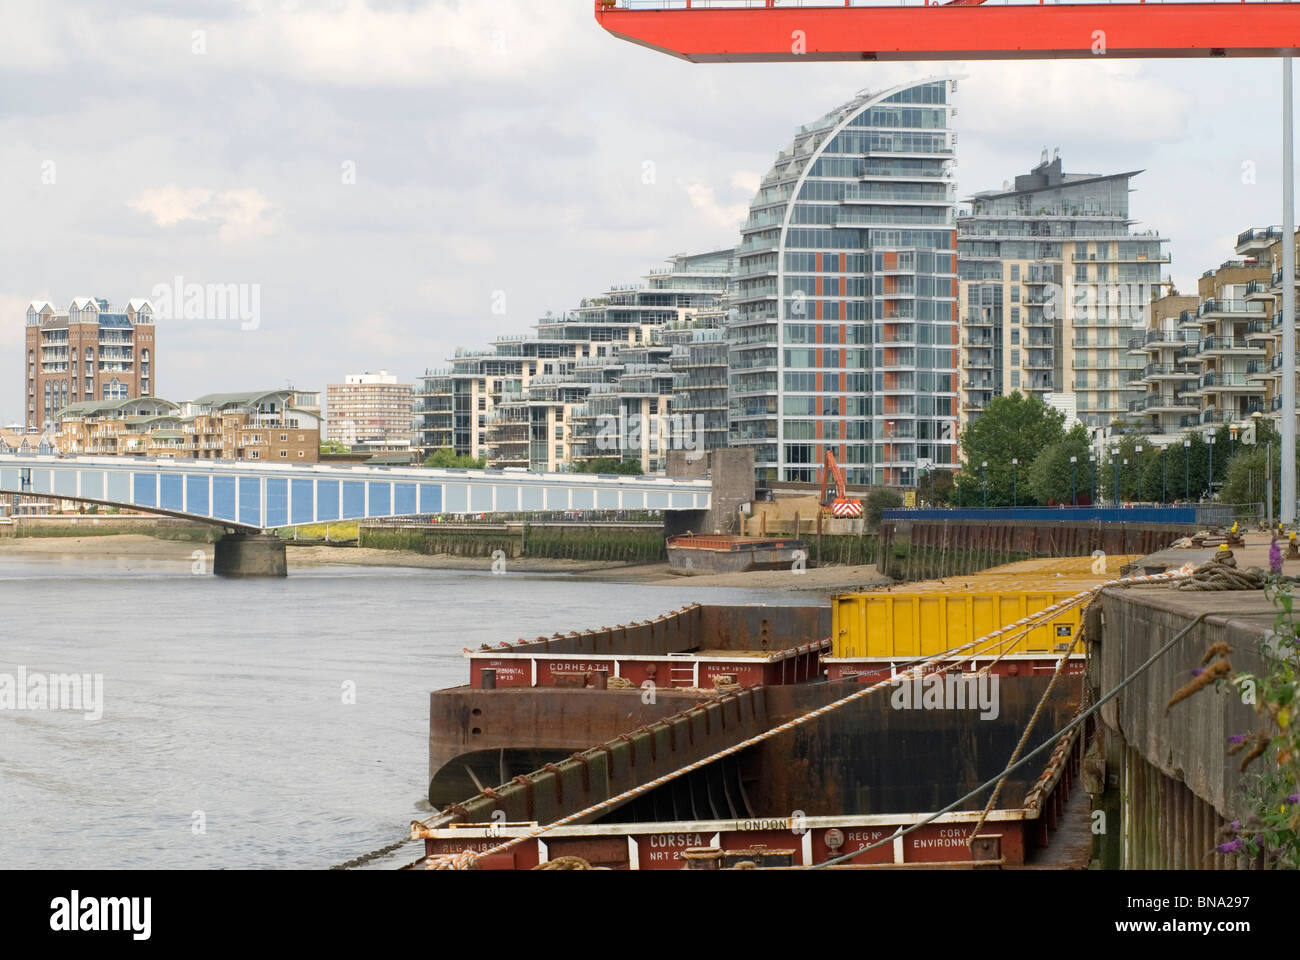 River Thames at Wandsworth. Wandsworth Bridge. Gantries and barges for the Wandsworth Council refuse and recycling - Stock Image